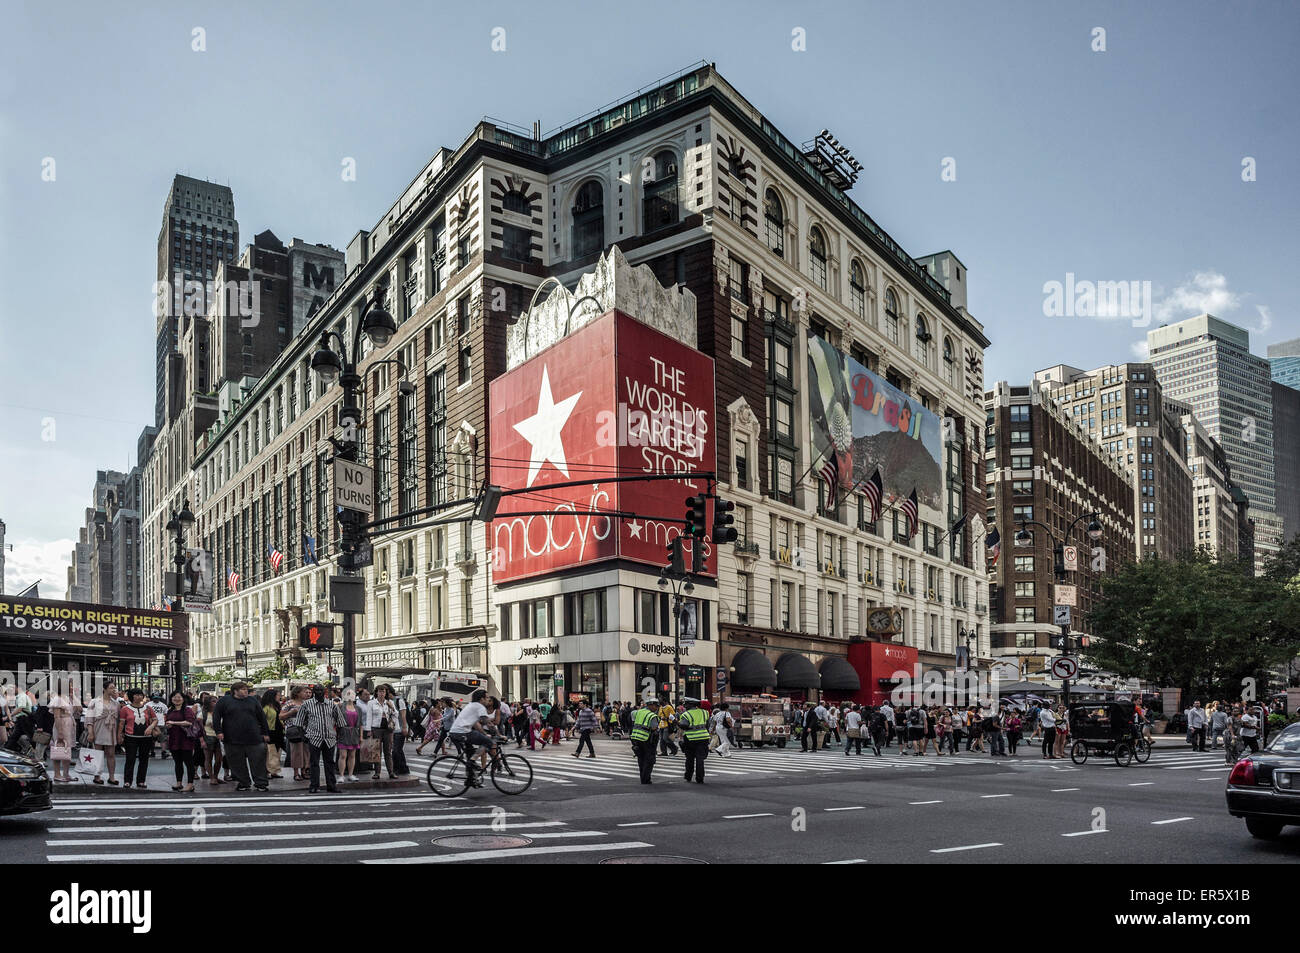 Macy's New Yorks largest  department store, 34th street, New York, USA - Stock Image